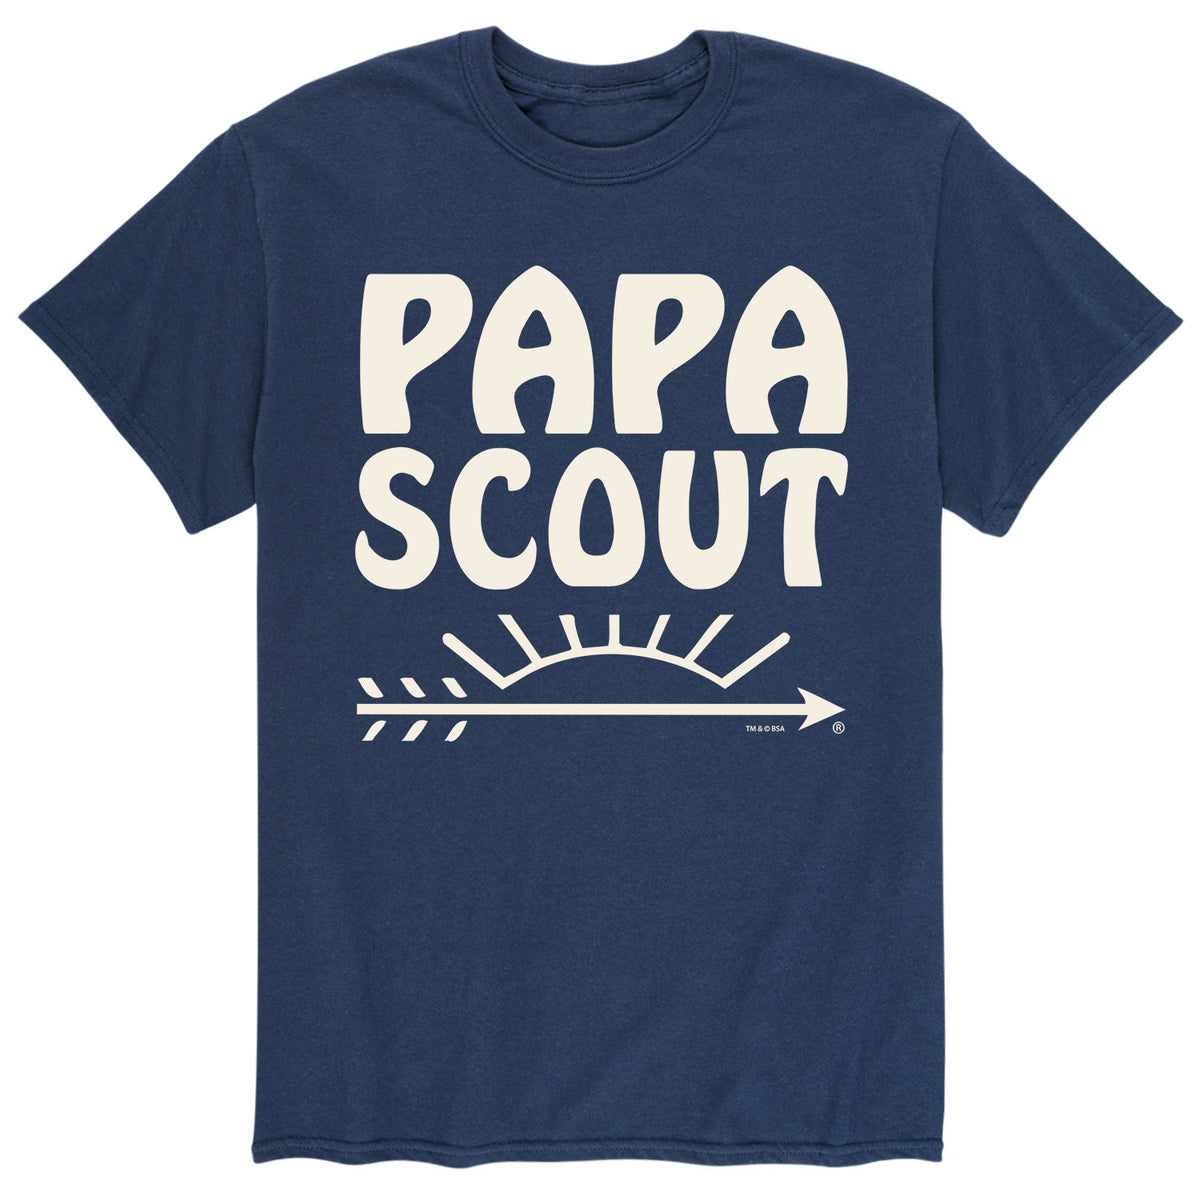 Papa Scout - Men's Short Sleeve T-Shirt